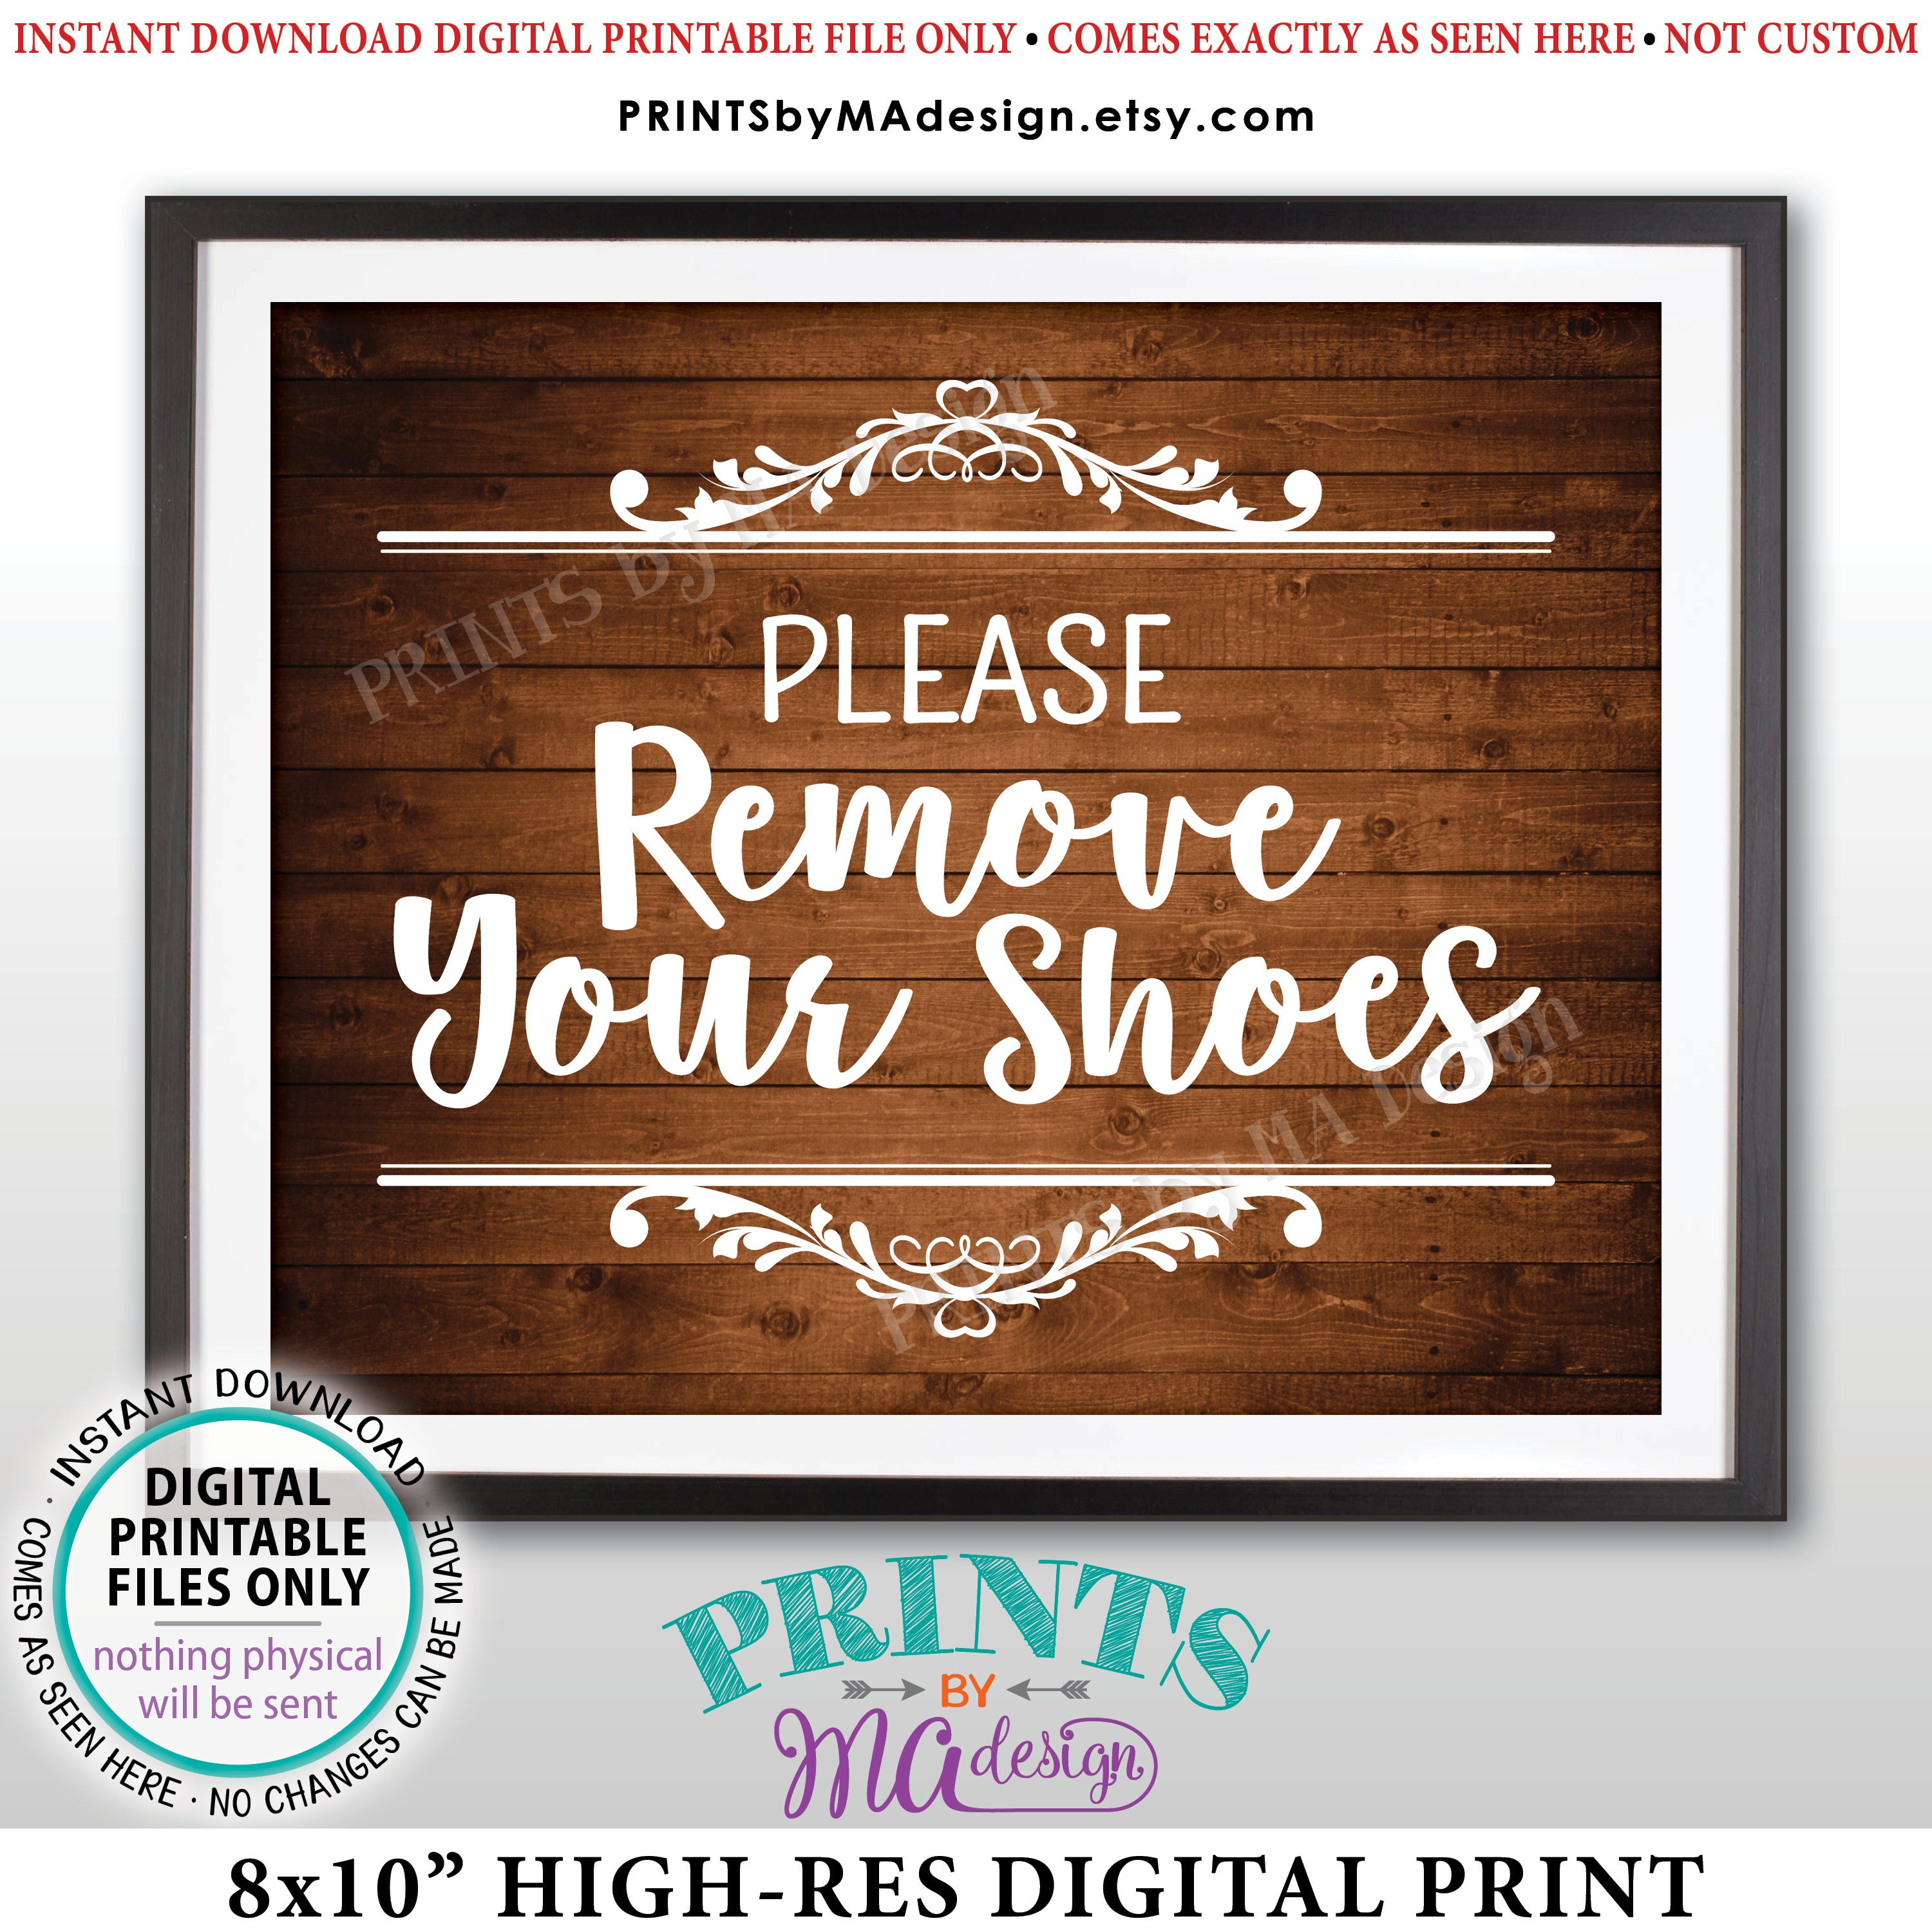 photo about Please Take Off Your Shoes Sign Printable named Be sure to Get rid of Your Footwear Indicator, Get Off Your Sneakers Indication